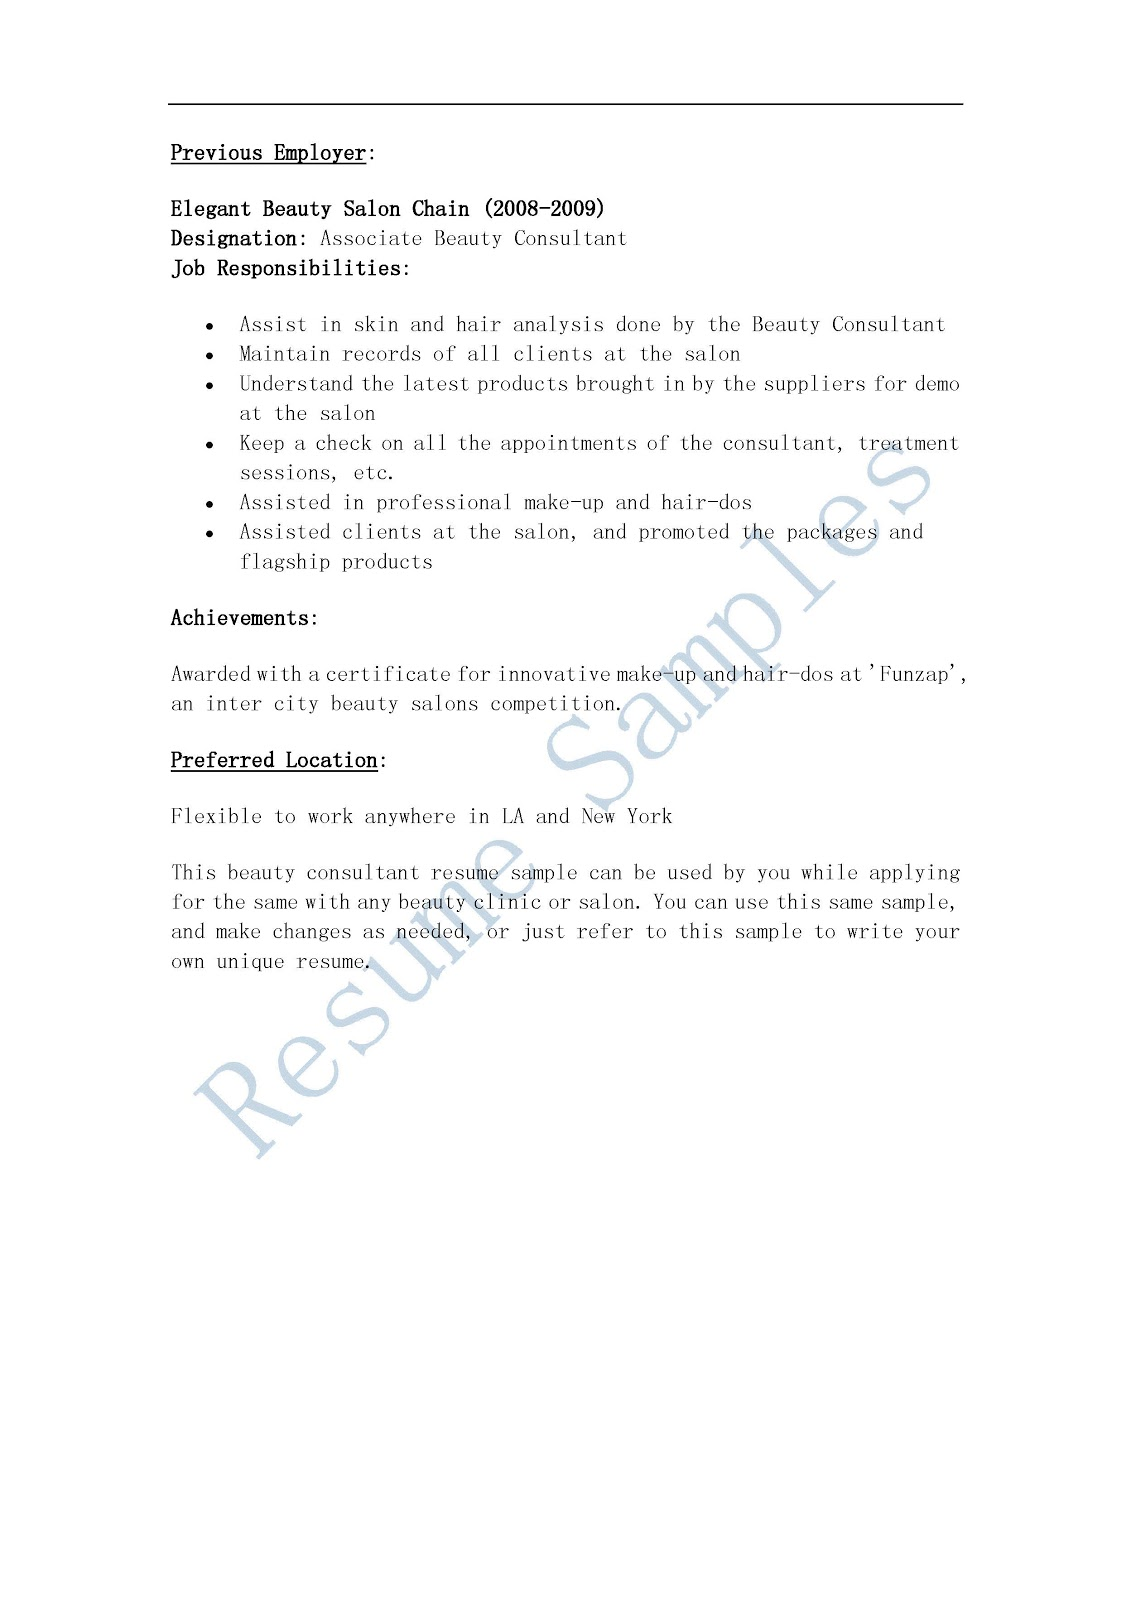 resume samples  beauty consultant resume